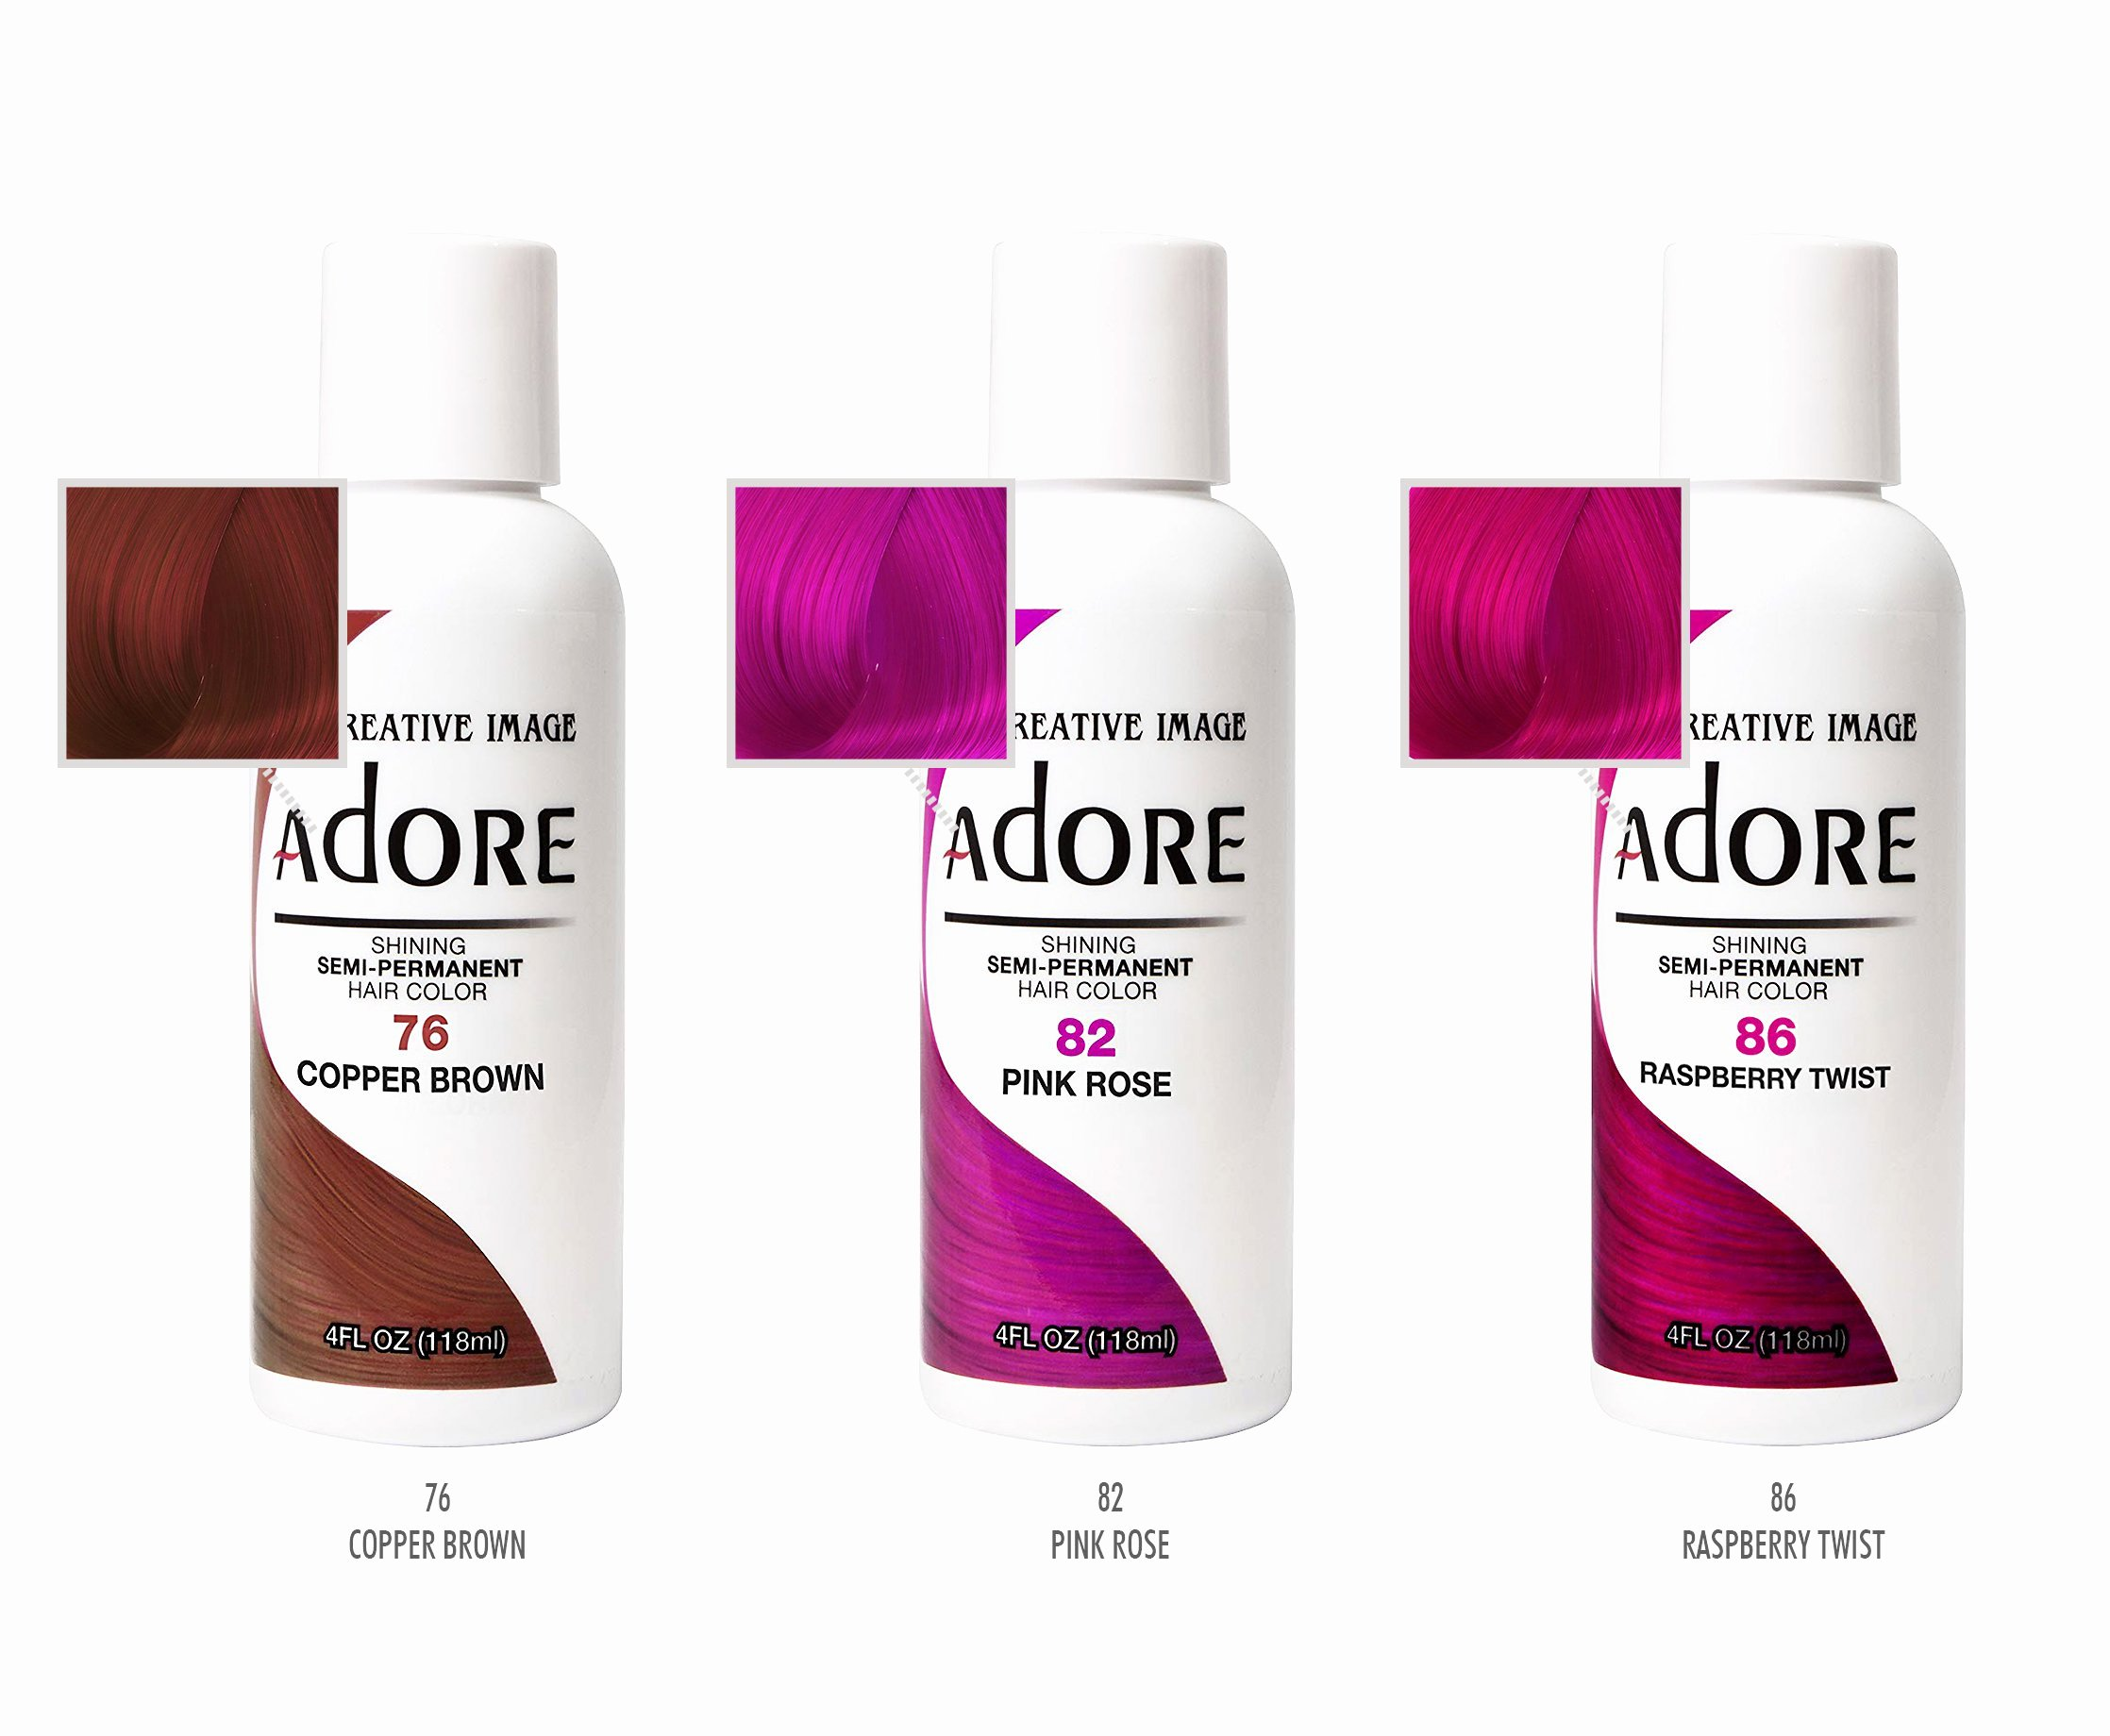 Adore Semi Permanent Hair Color Chart Awesome Adore Hair Color Copper Brown